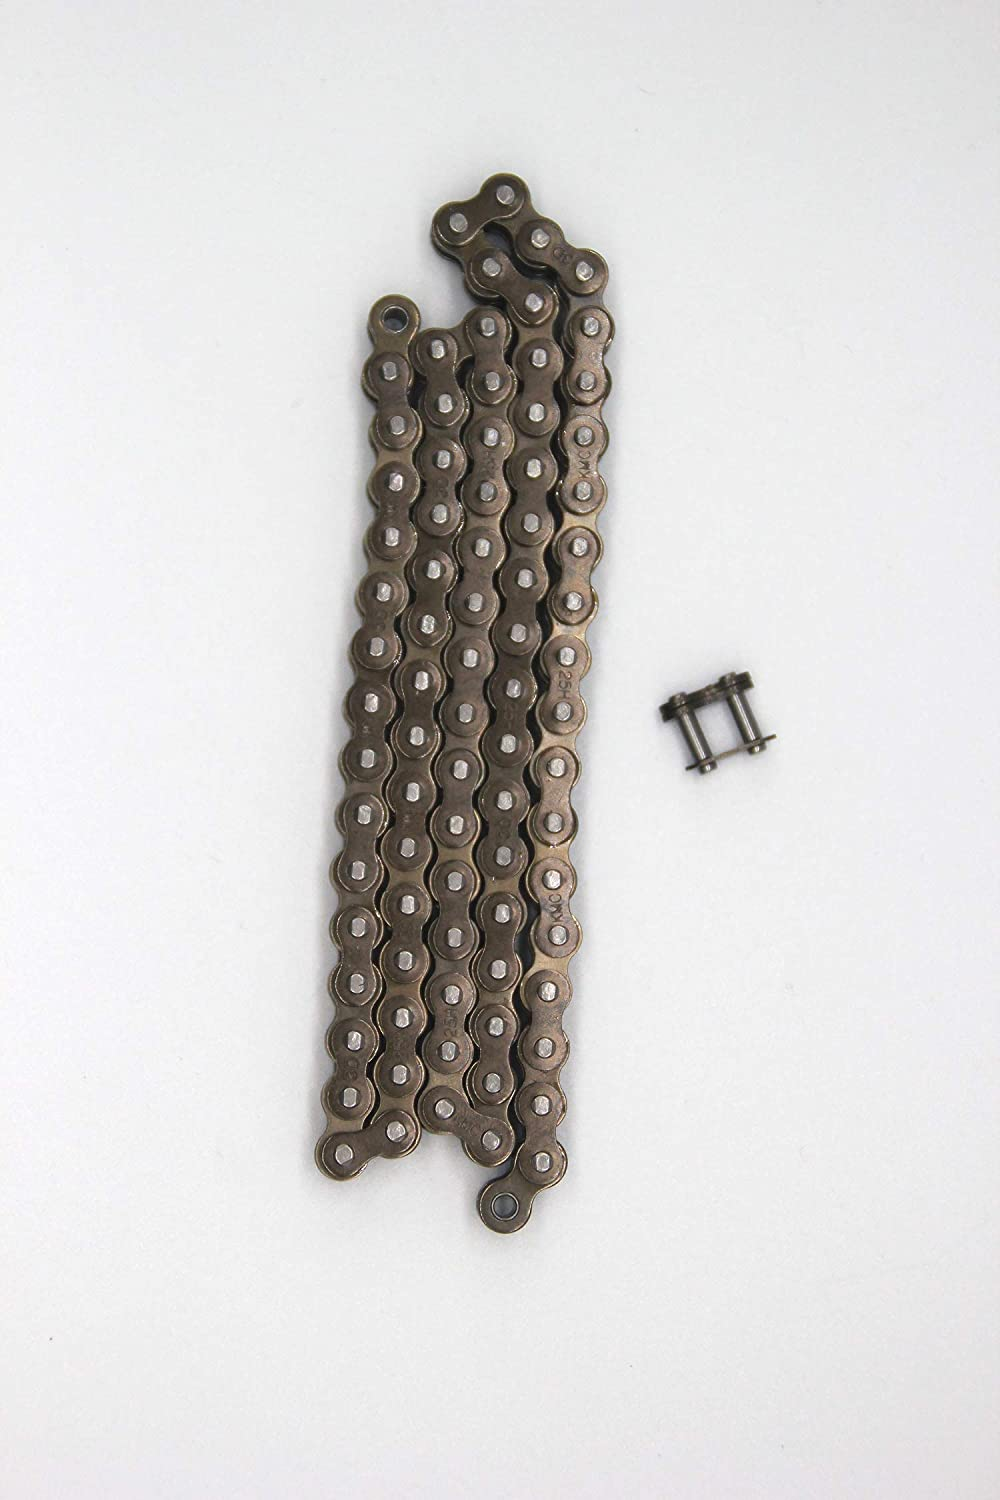 0.5M chain length Chain suitable for 04C sprocket 04C-1 25H-1 chain pitch 6.35 roller chain industrial gear scooter